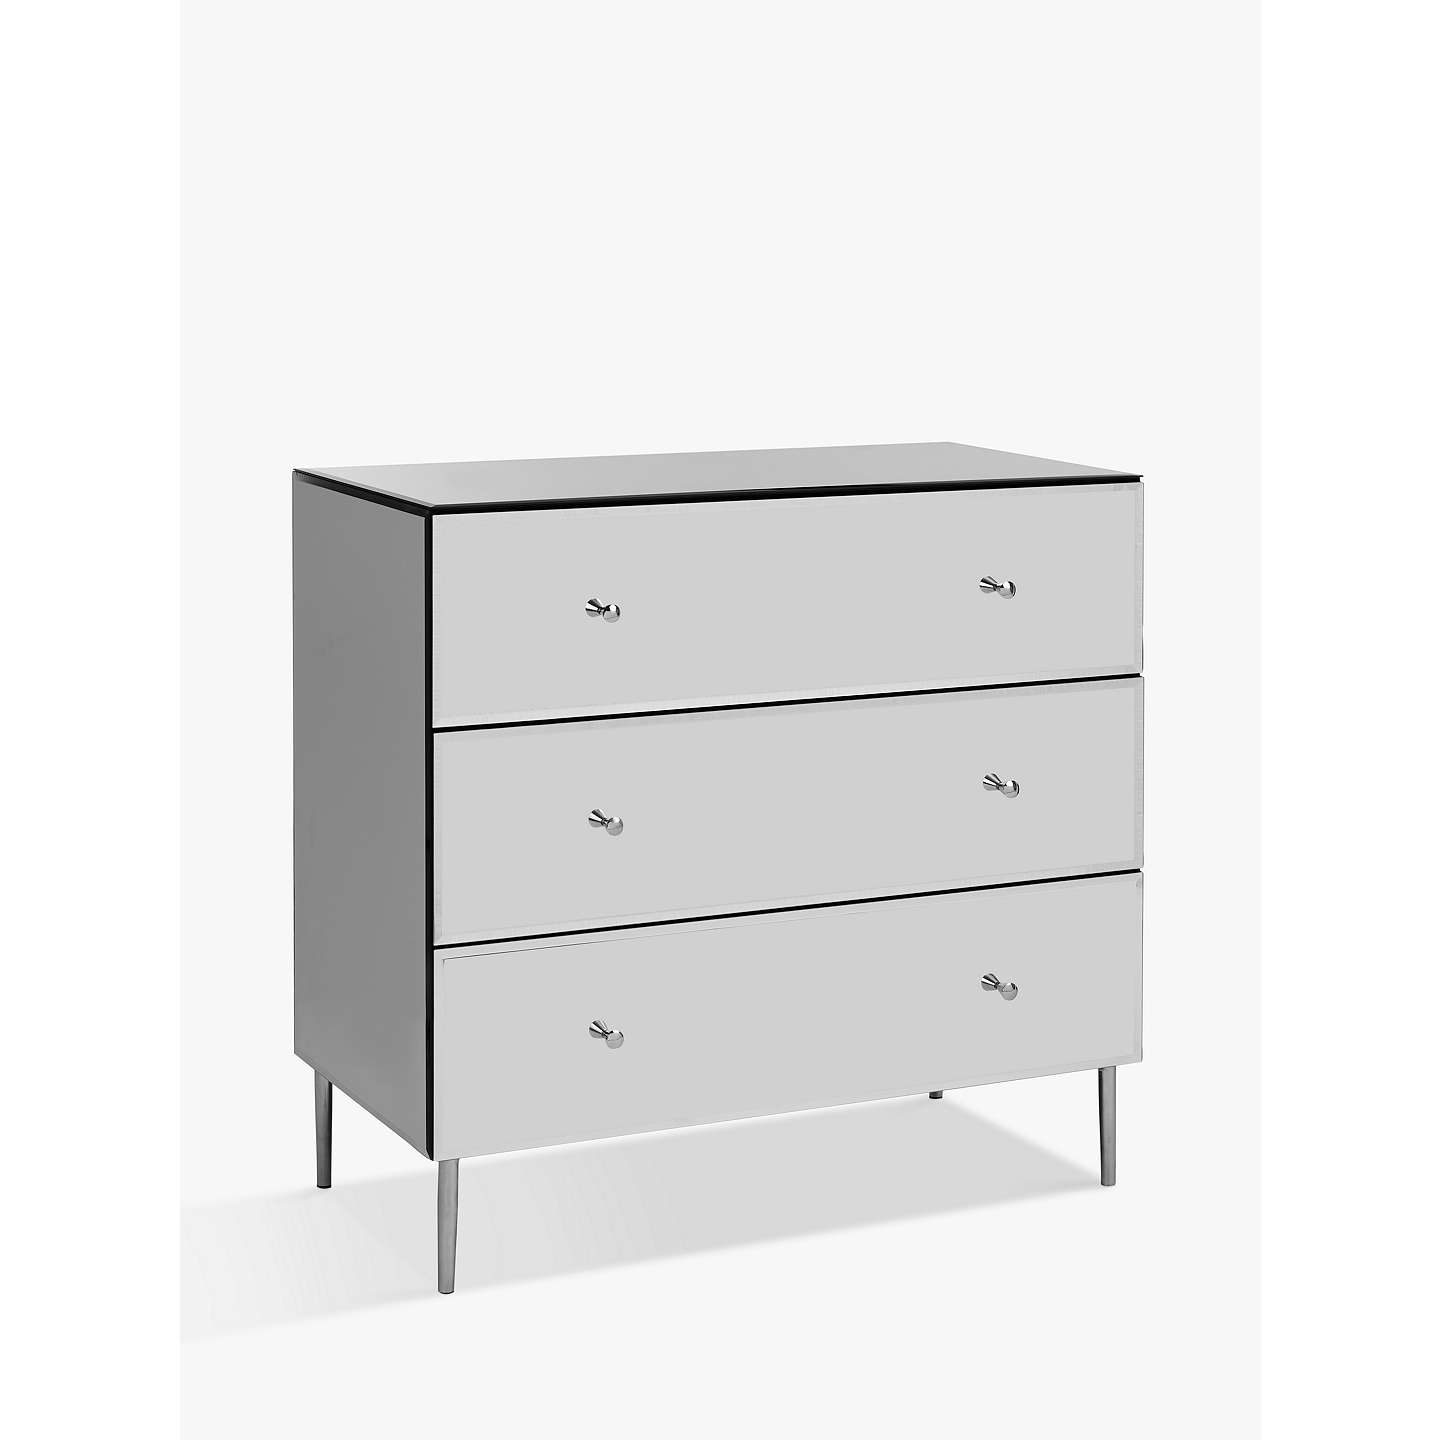 adorable drawers rvs intense tots stainless chest kidsmill legs black extender drawer dresser steel